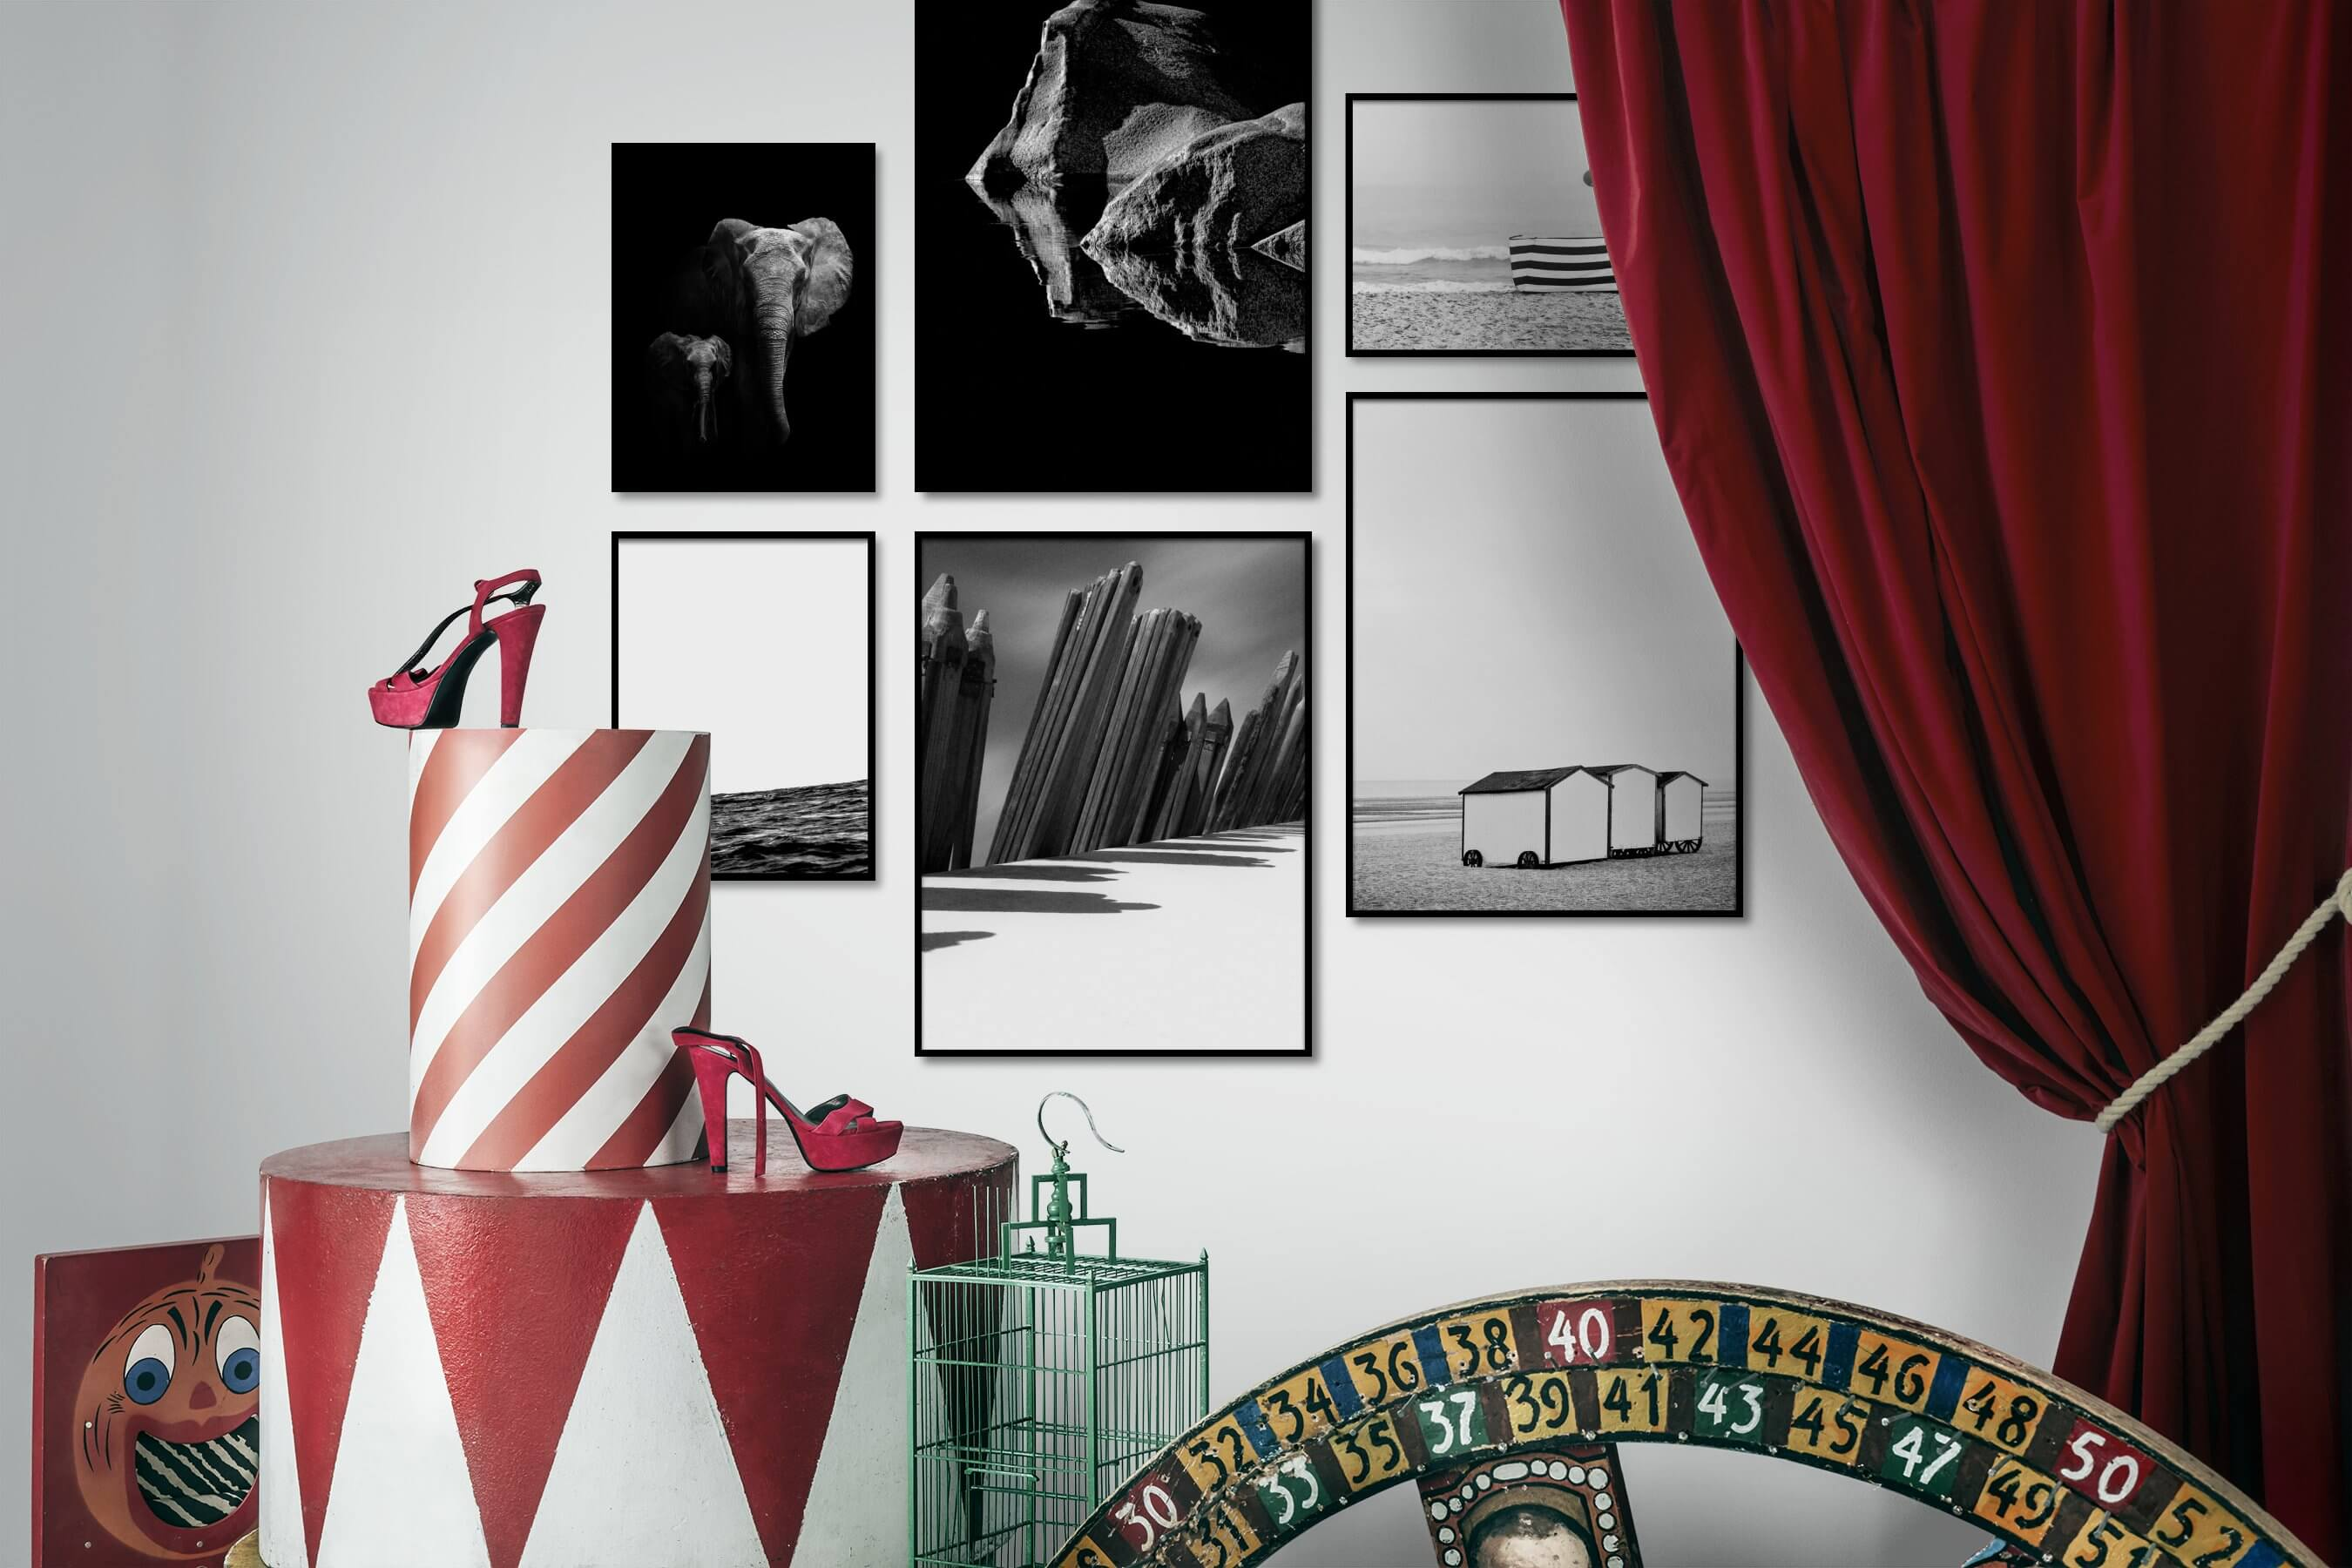 Gallery wall idea with six framed pictures arranged on a wall depicting Black & White, Dark Tones, For the Minimalist, Animals, Nature, Mindfulness, Bright Tones, Beach & Water, For the Moderate, and Vintage